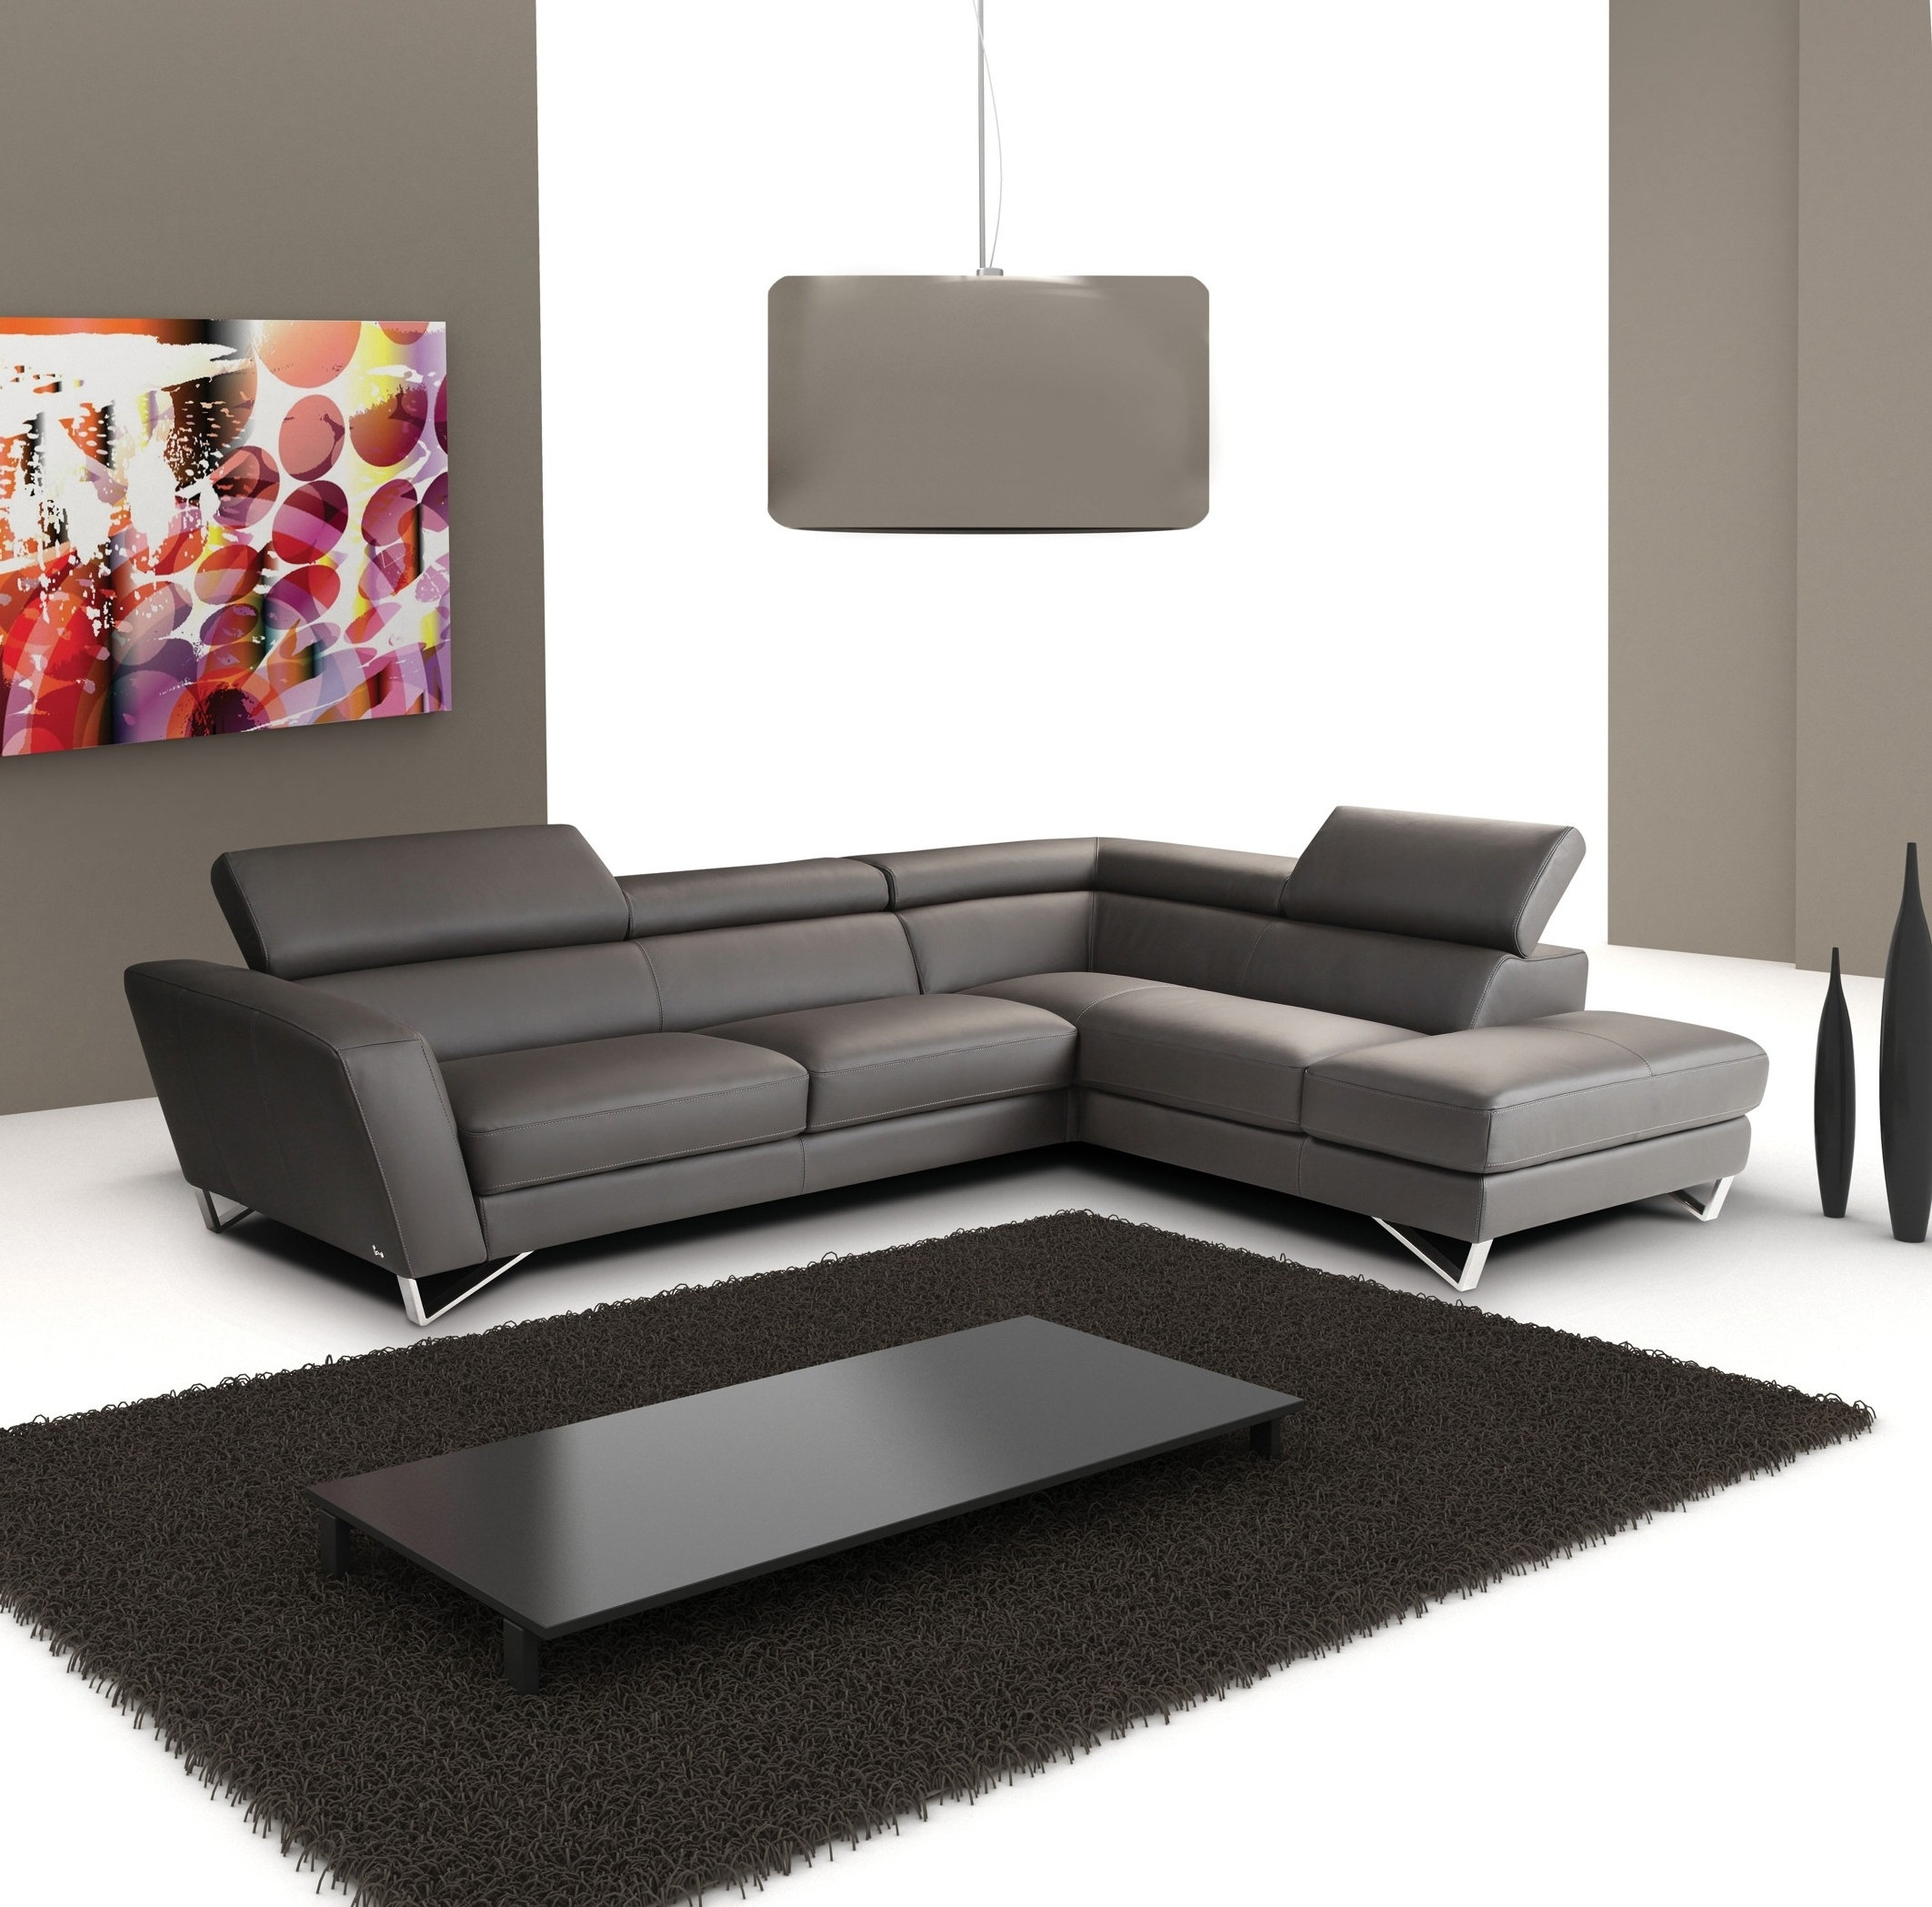 Leather Sectional Couches For Sale Sofas Sofa Couch Amazon Sam S For Latest Sectional Sofas At Amazon (View 20 of 20)